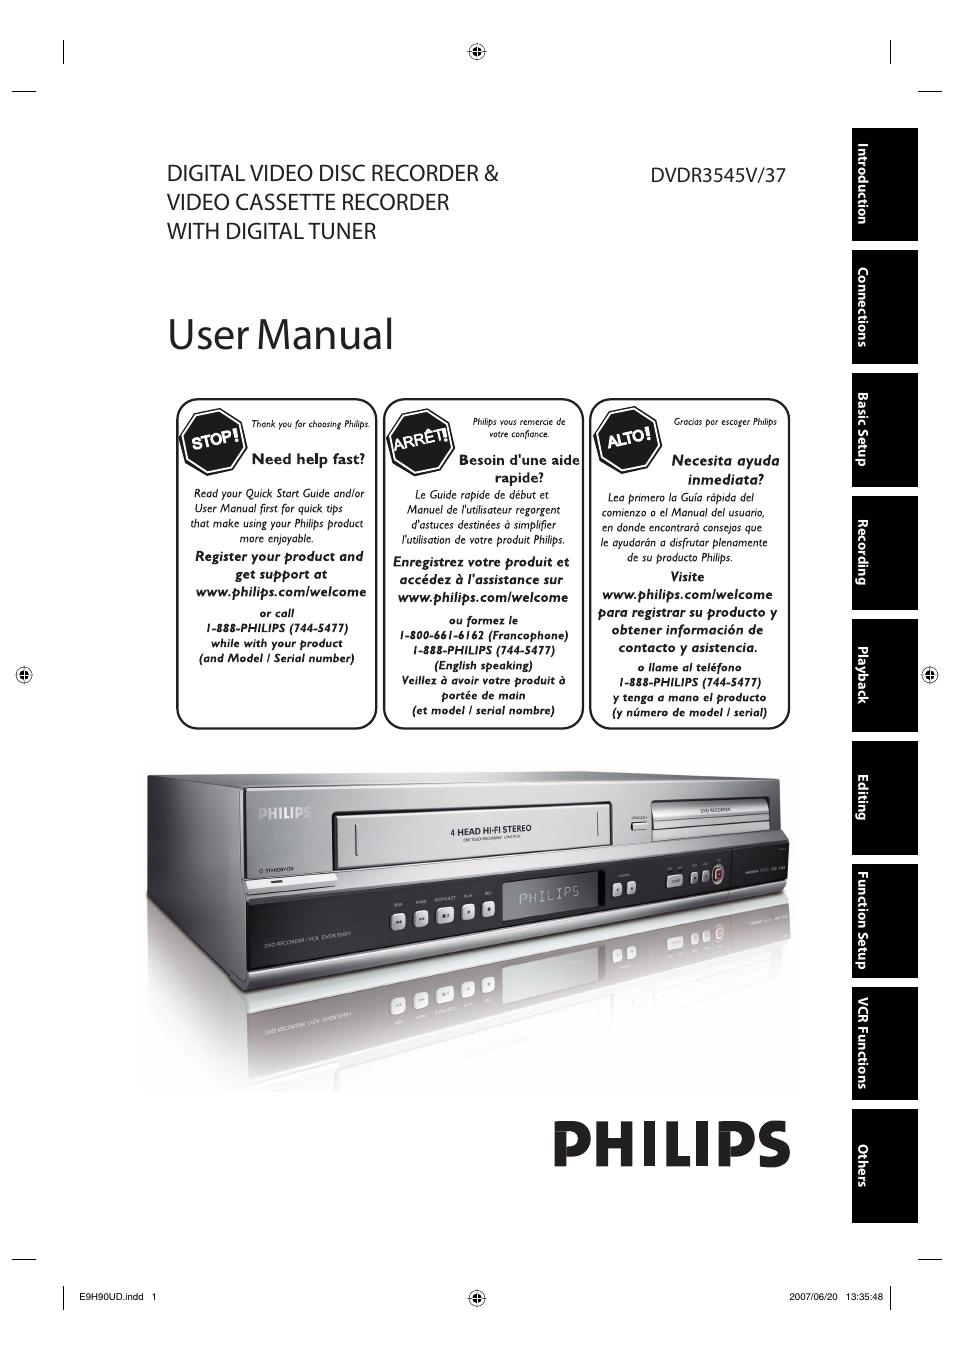 philips dvdr3545v 37 user manual 116 pages also for dvdr3545v 37b rh manualsdir com Philips Universal Remote SRP2003 27 Manual Philips Electronics Manuals